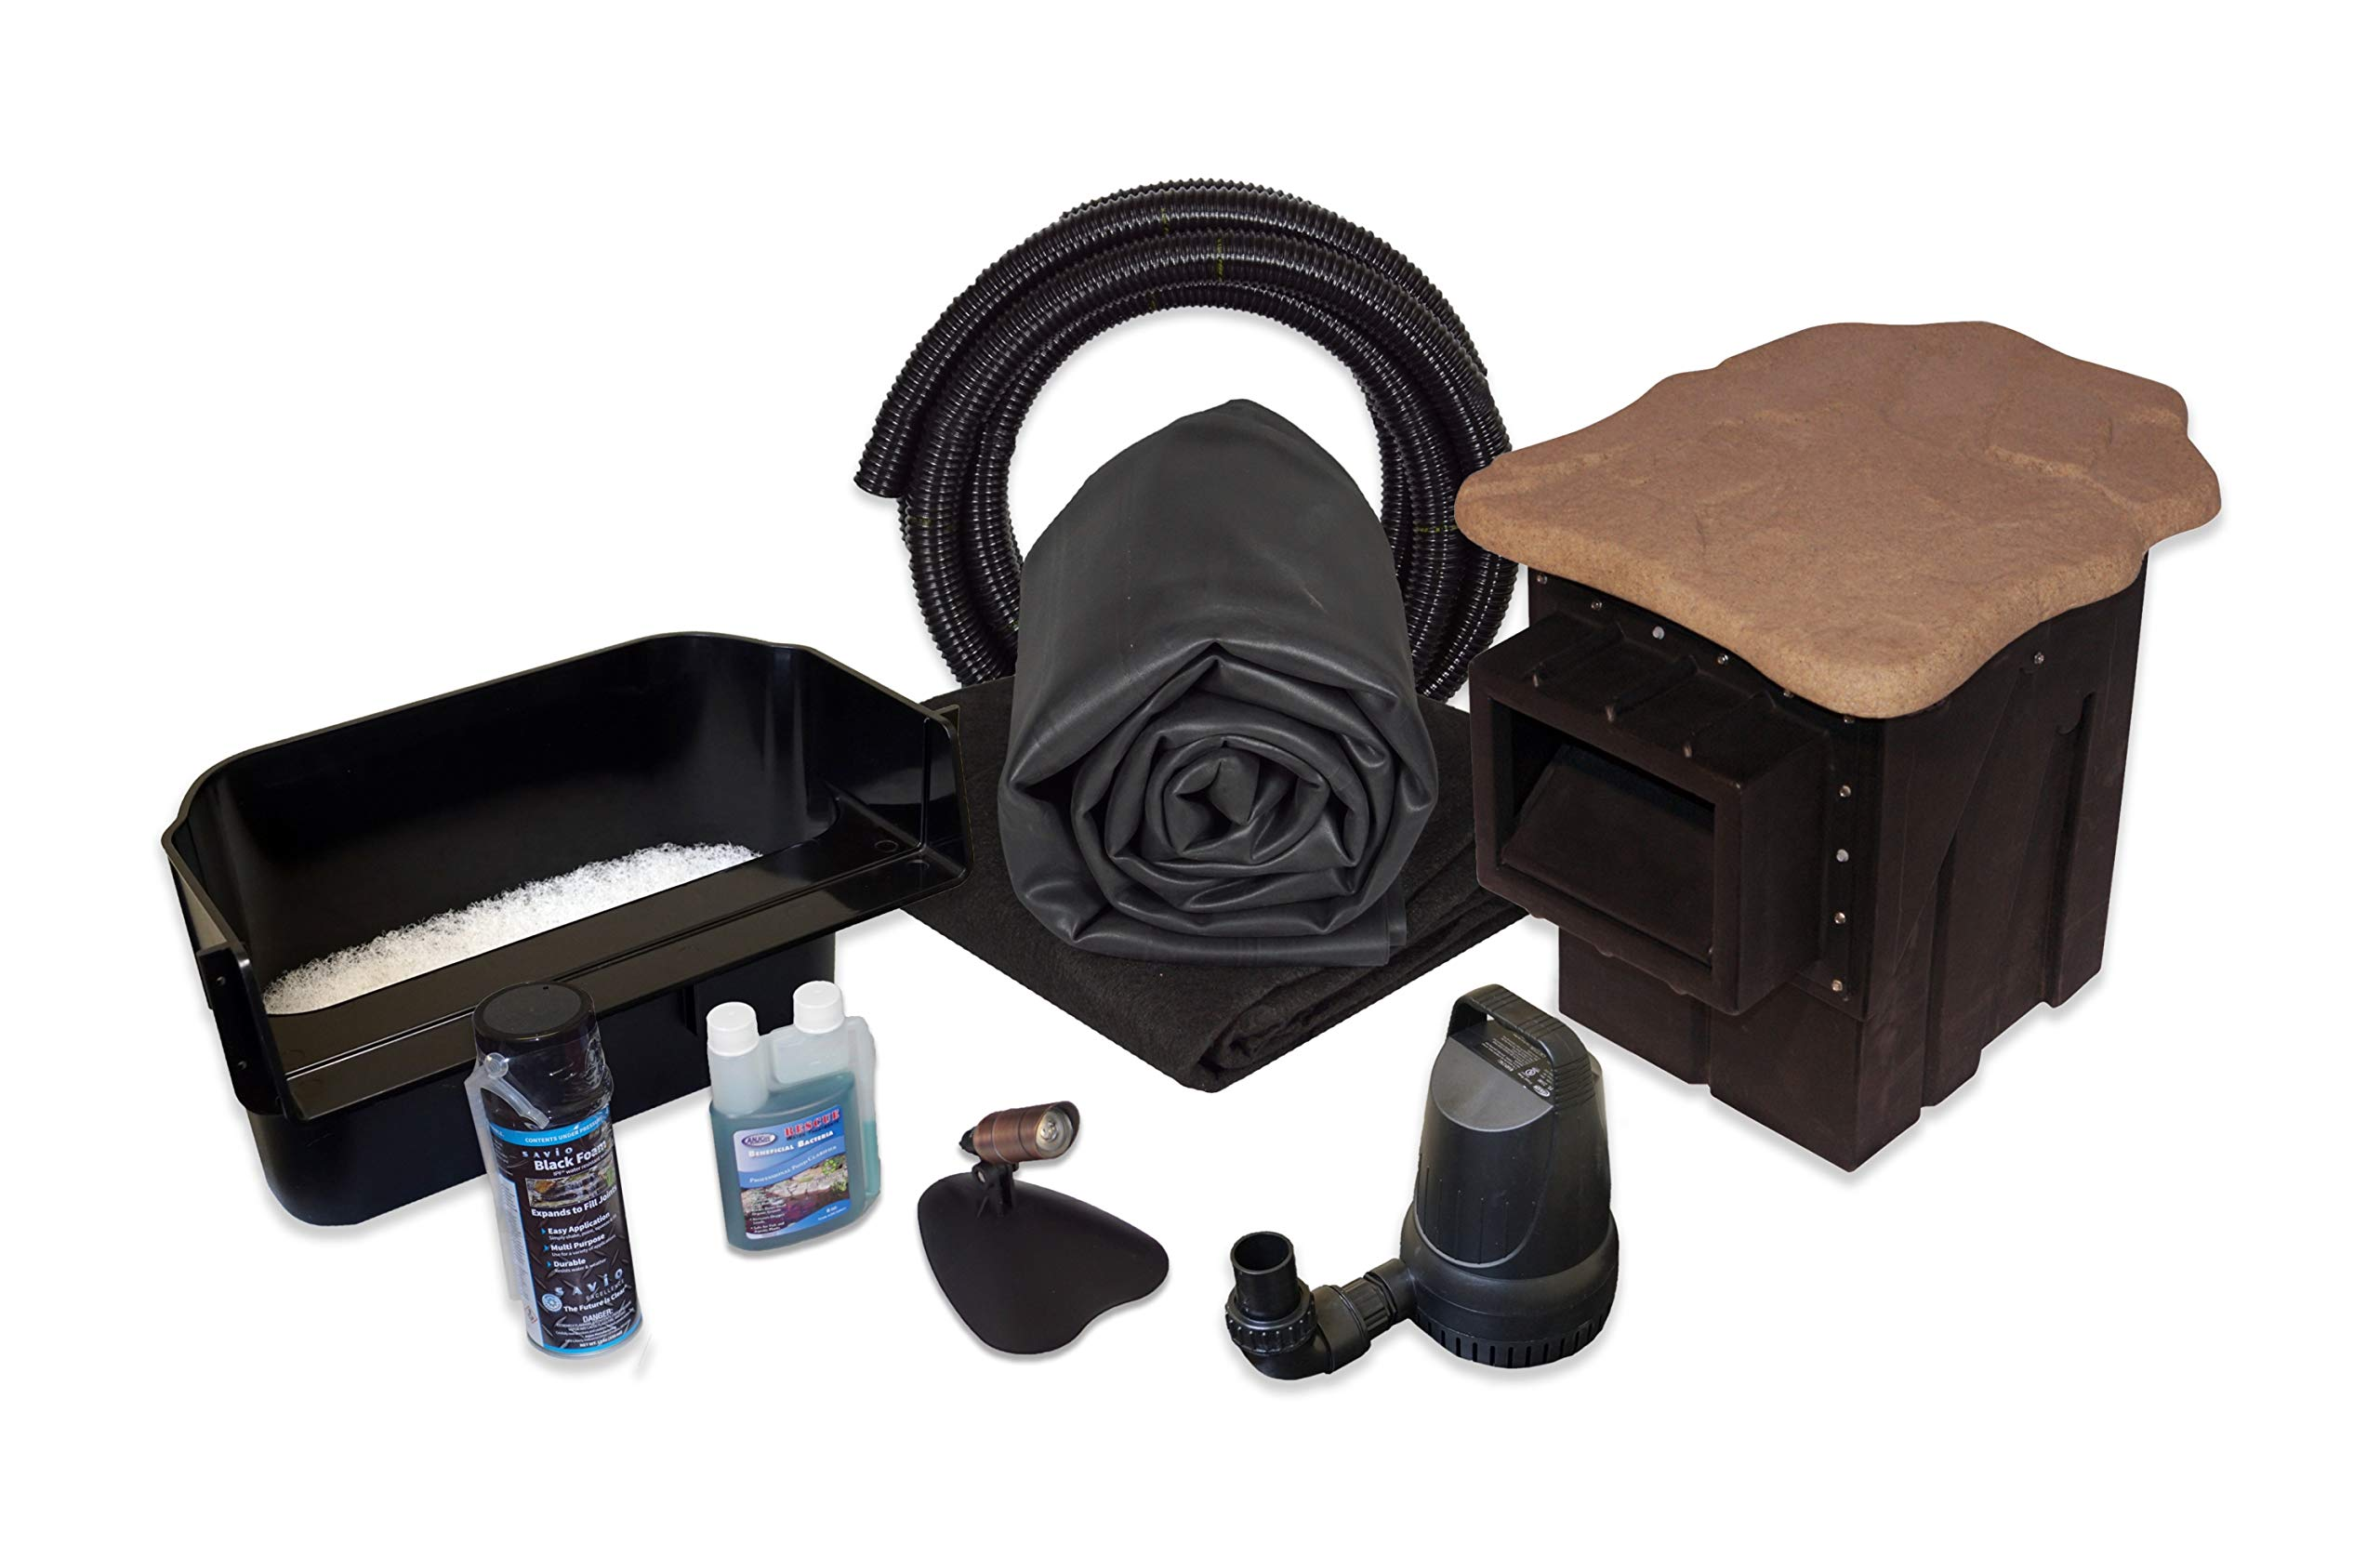 Simply Ponds 2100 Water Garden and Pond Kit with 15 Foot x 15 Foot EPDM Liner